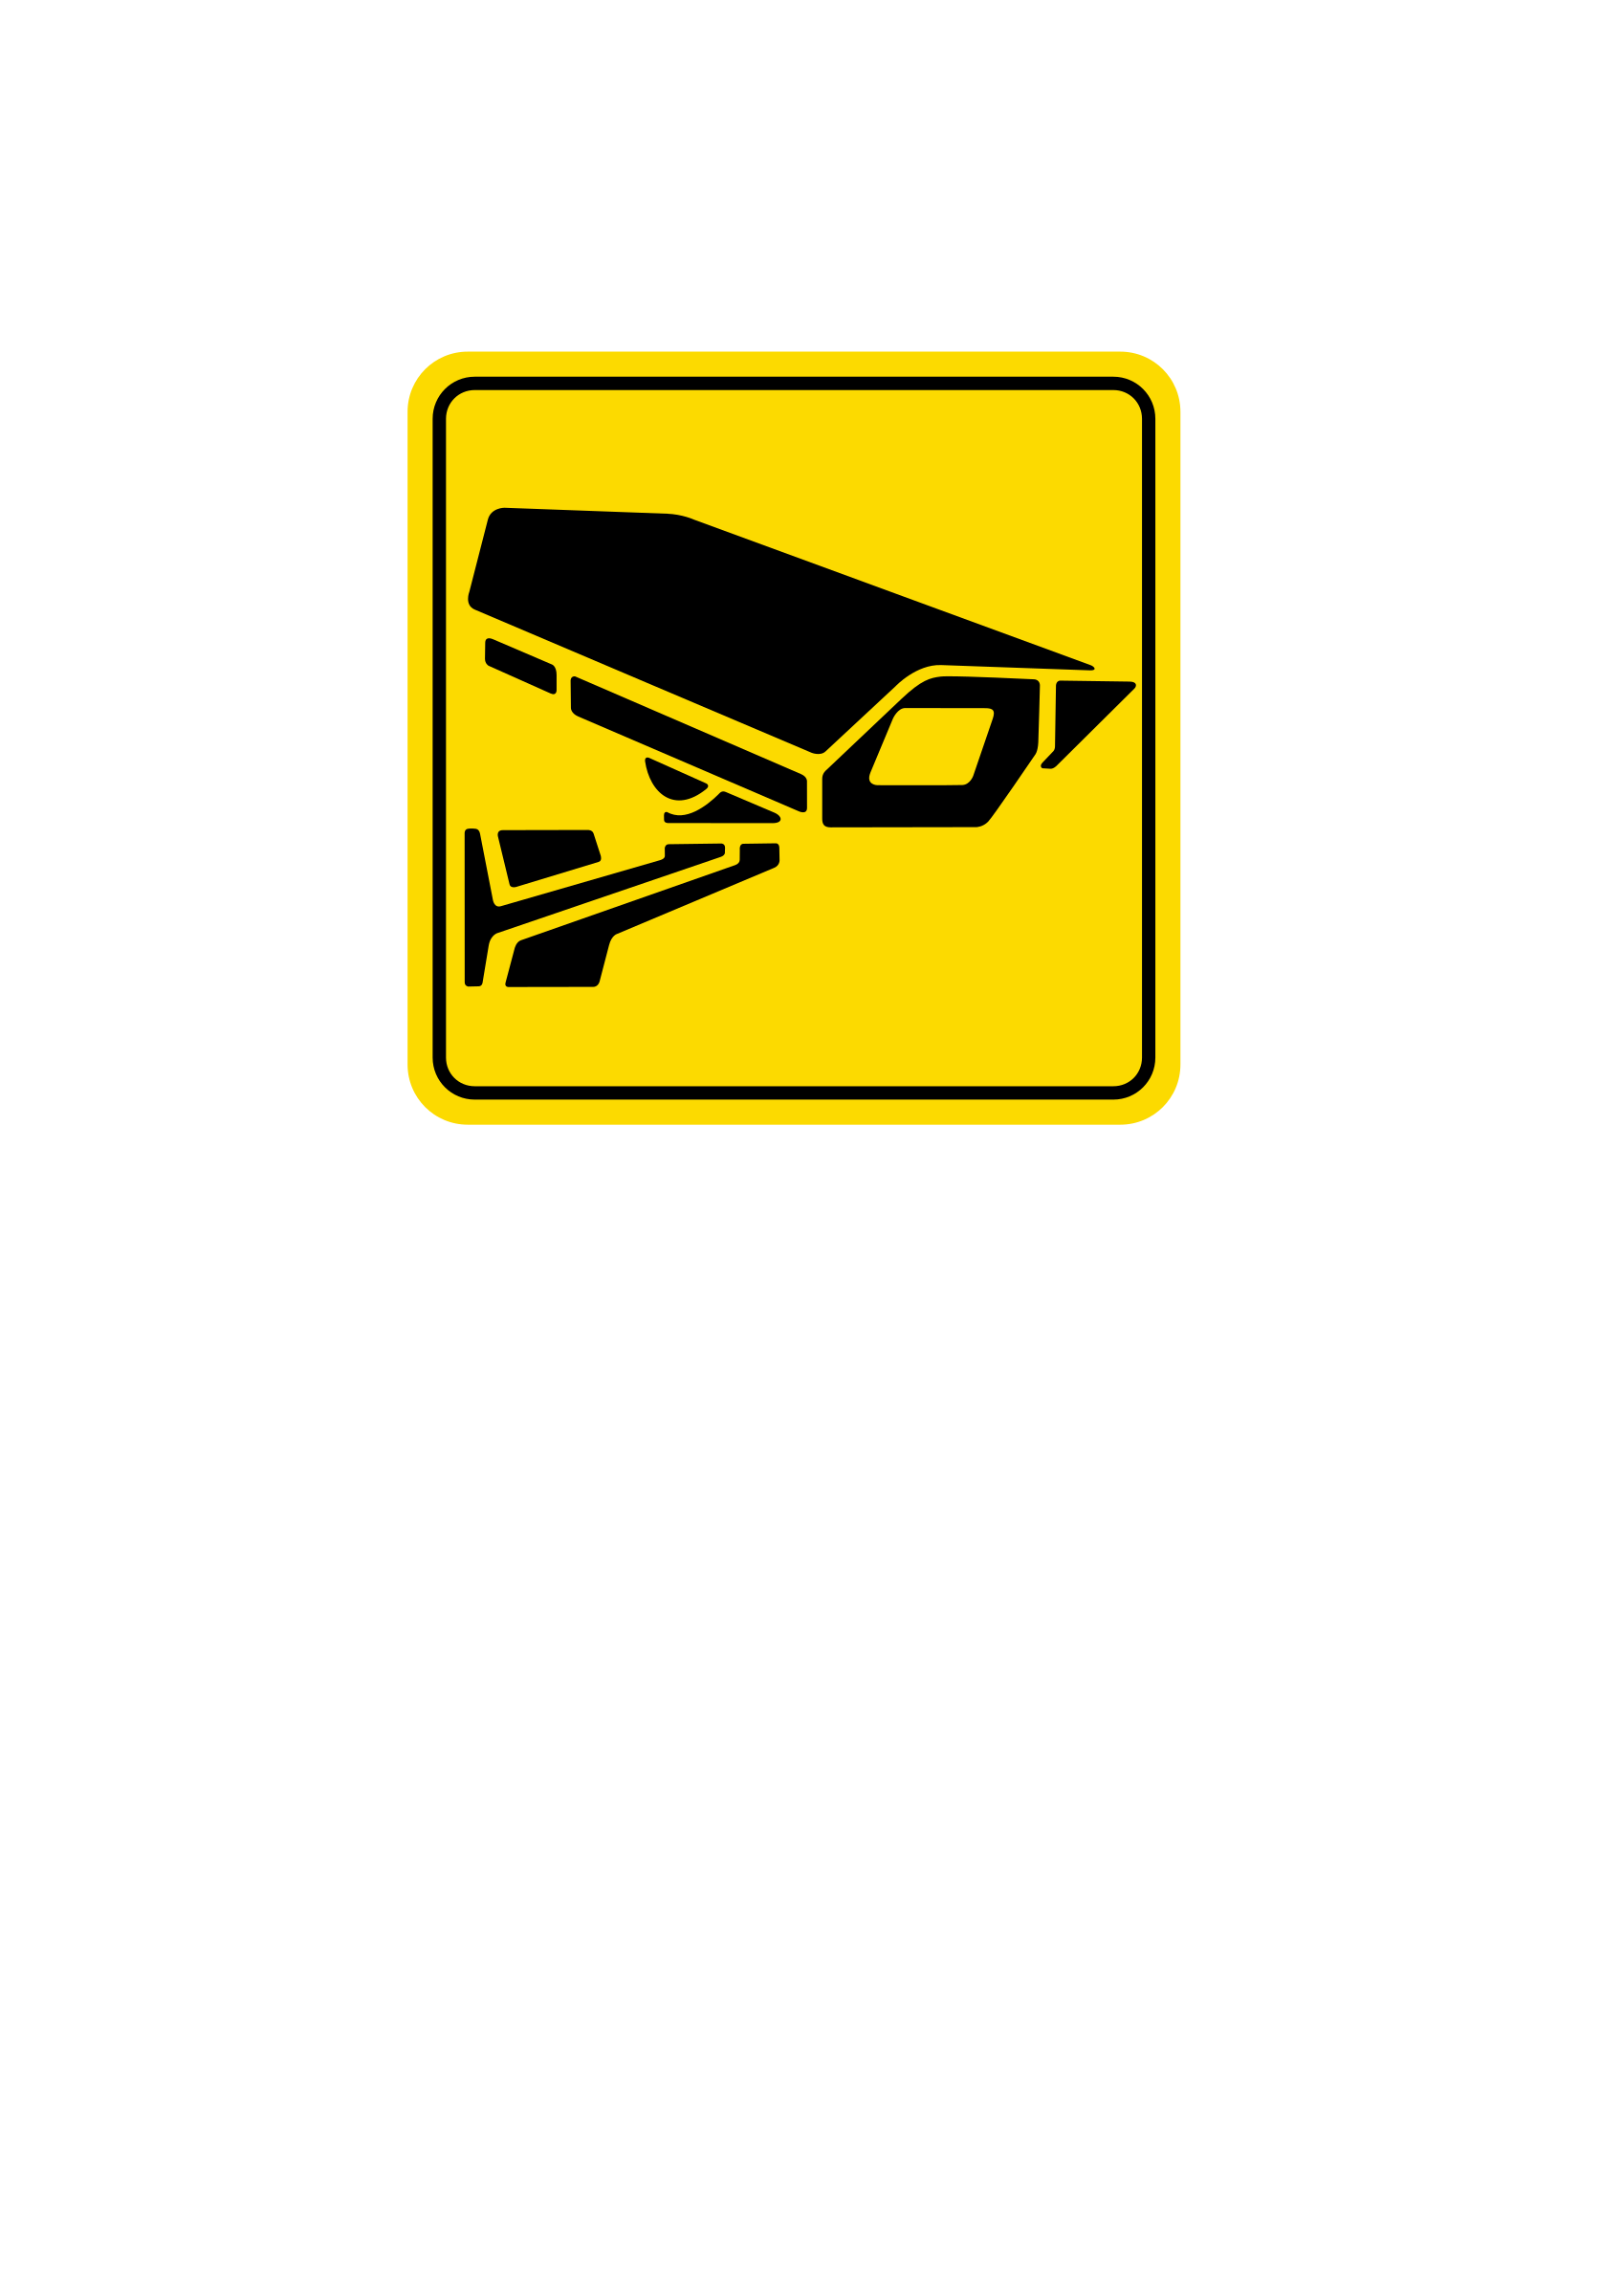 sign CCTV by artyom_rzhanov